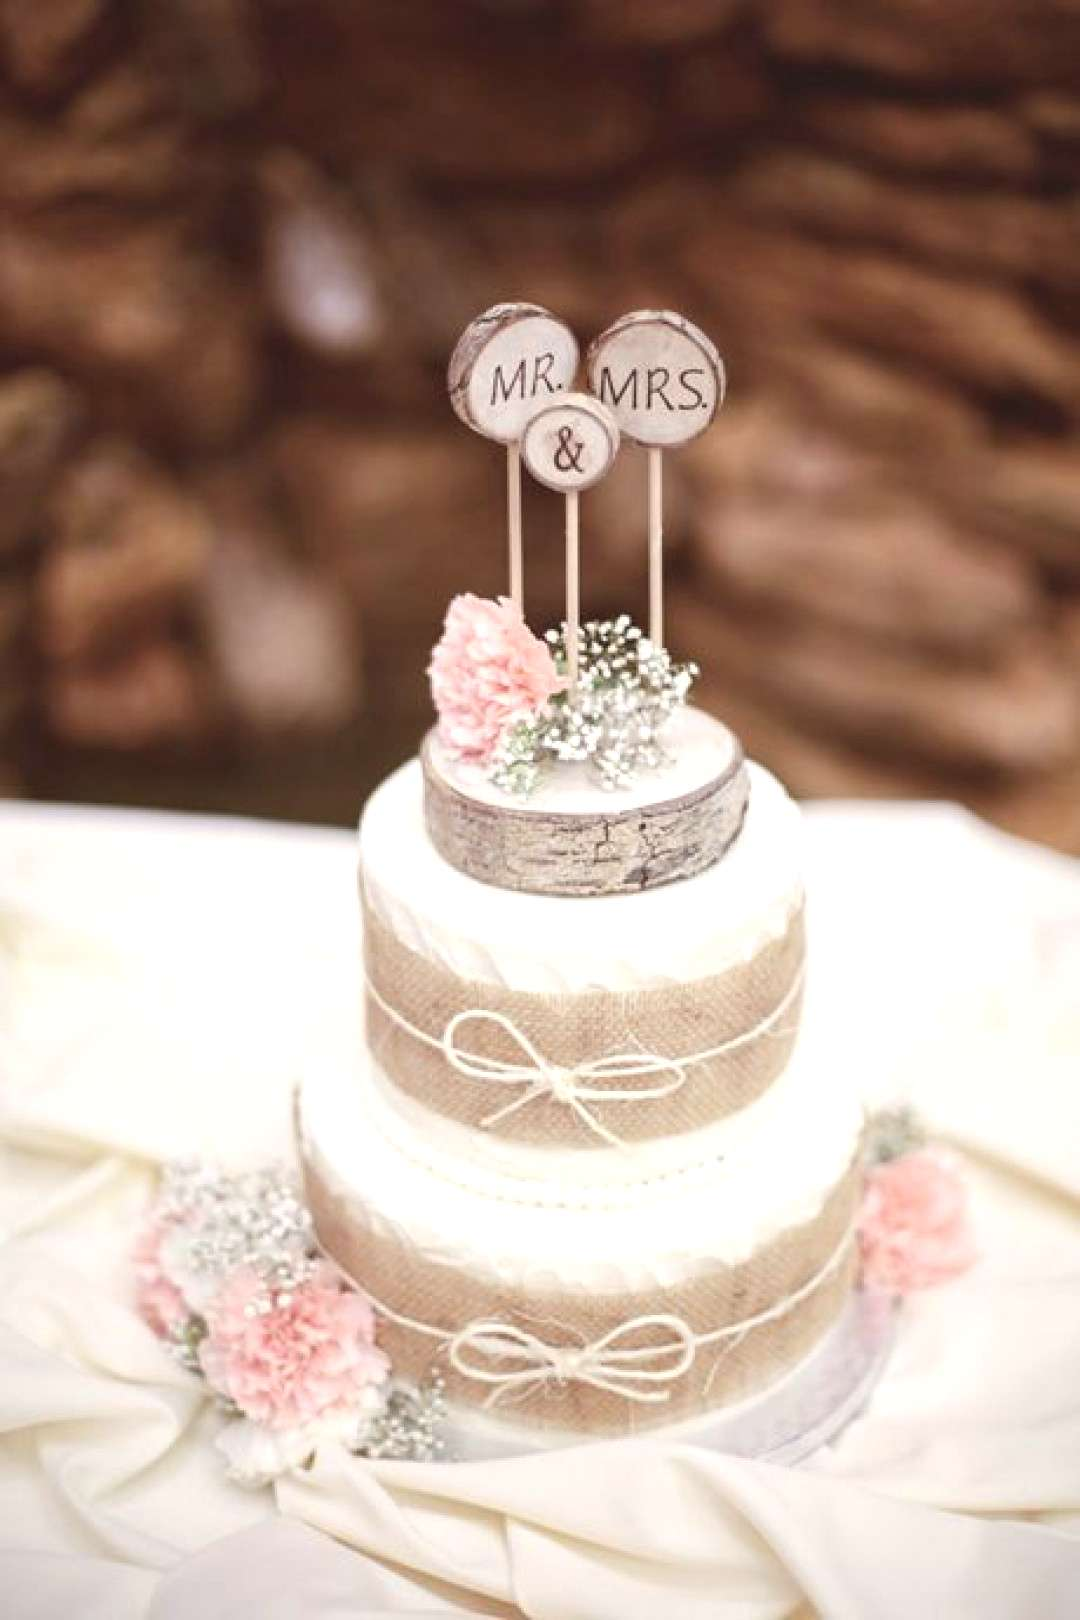 Wedding Cakes Photos amp Ideas - Brides Two-Tiered Cake with Burlap Ribbon. For a rustic bash, The